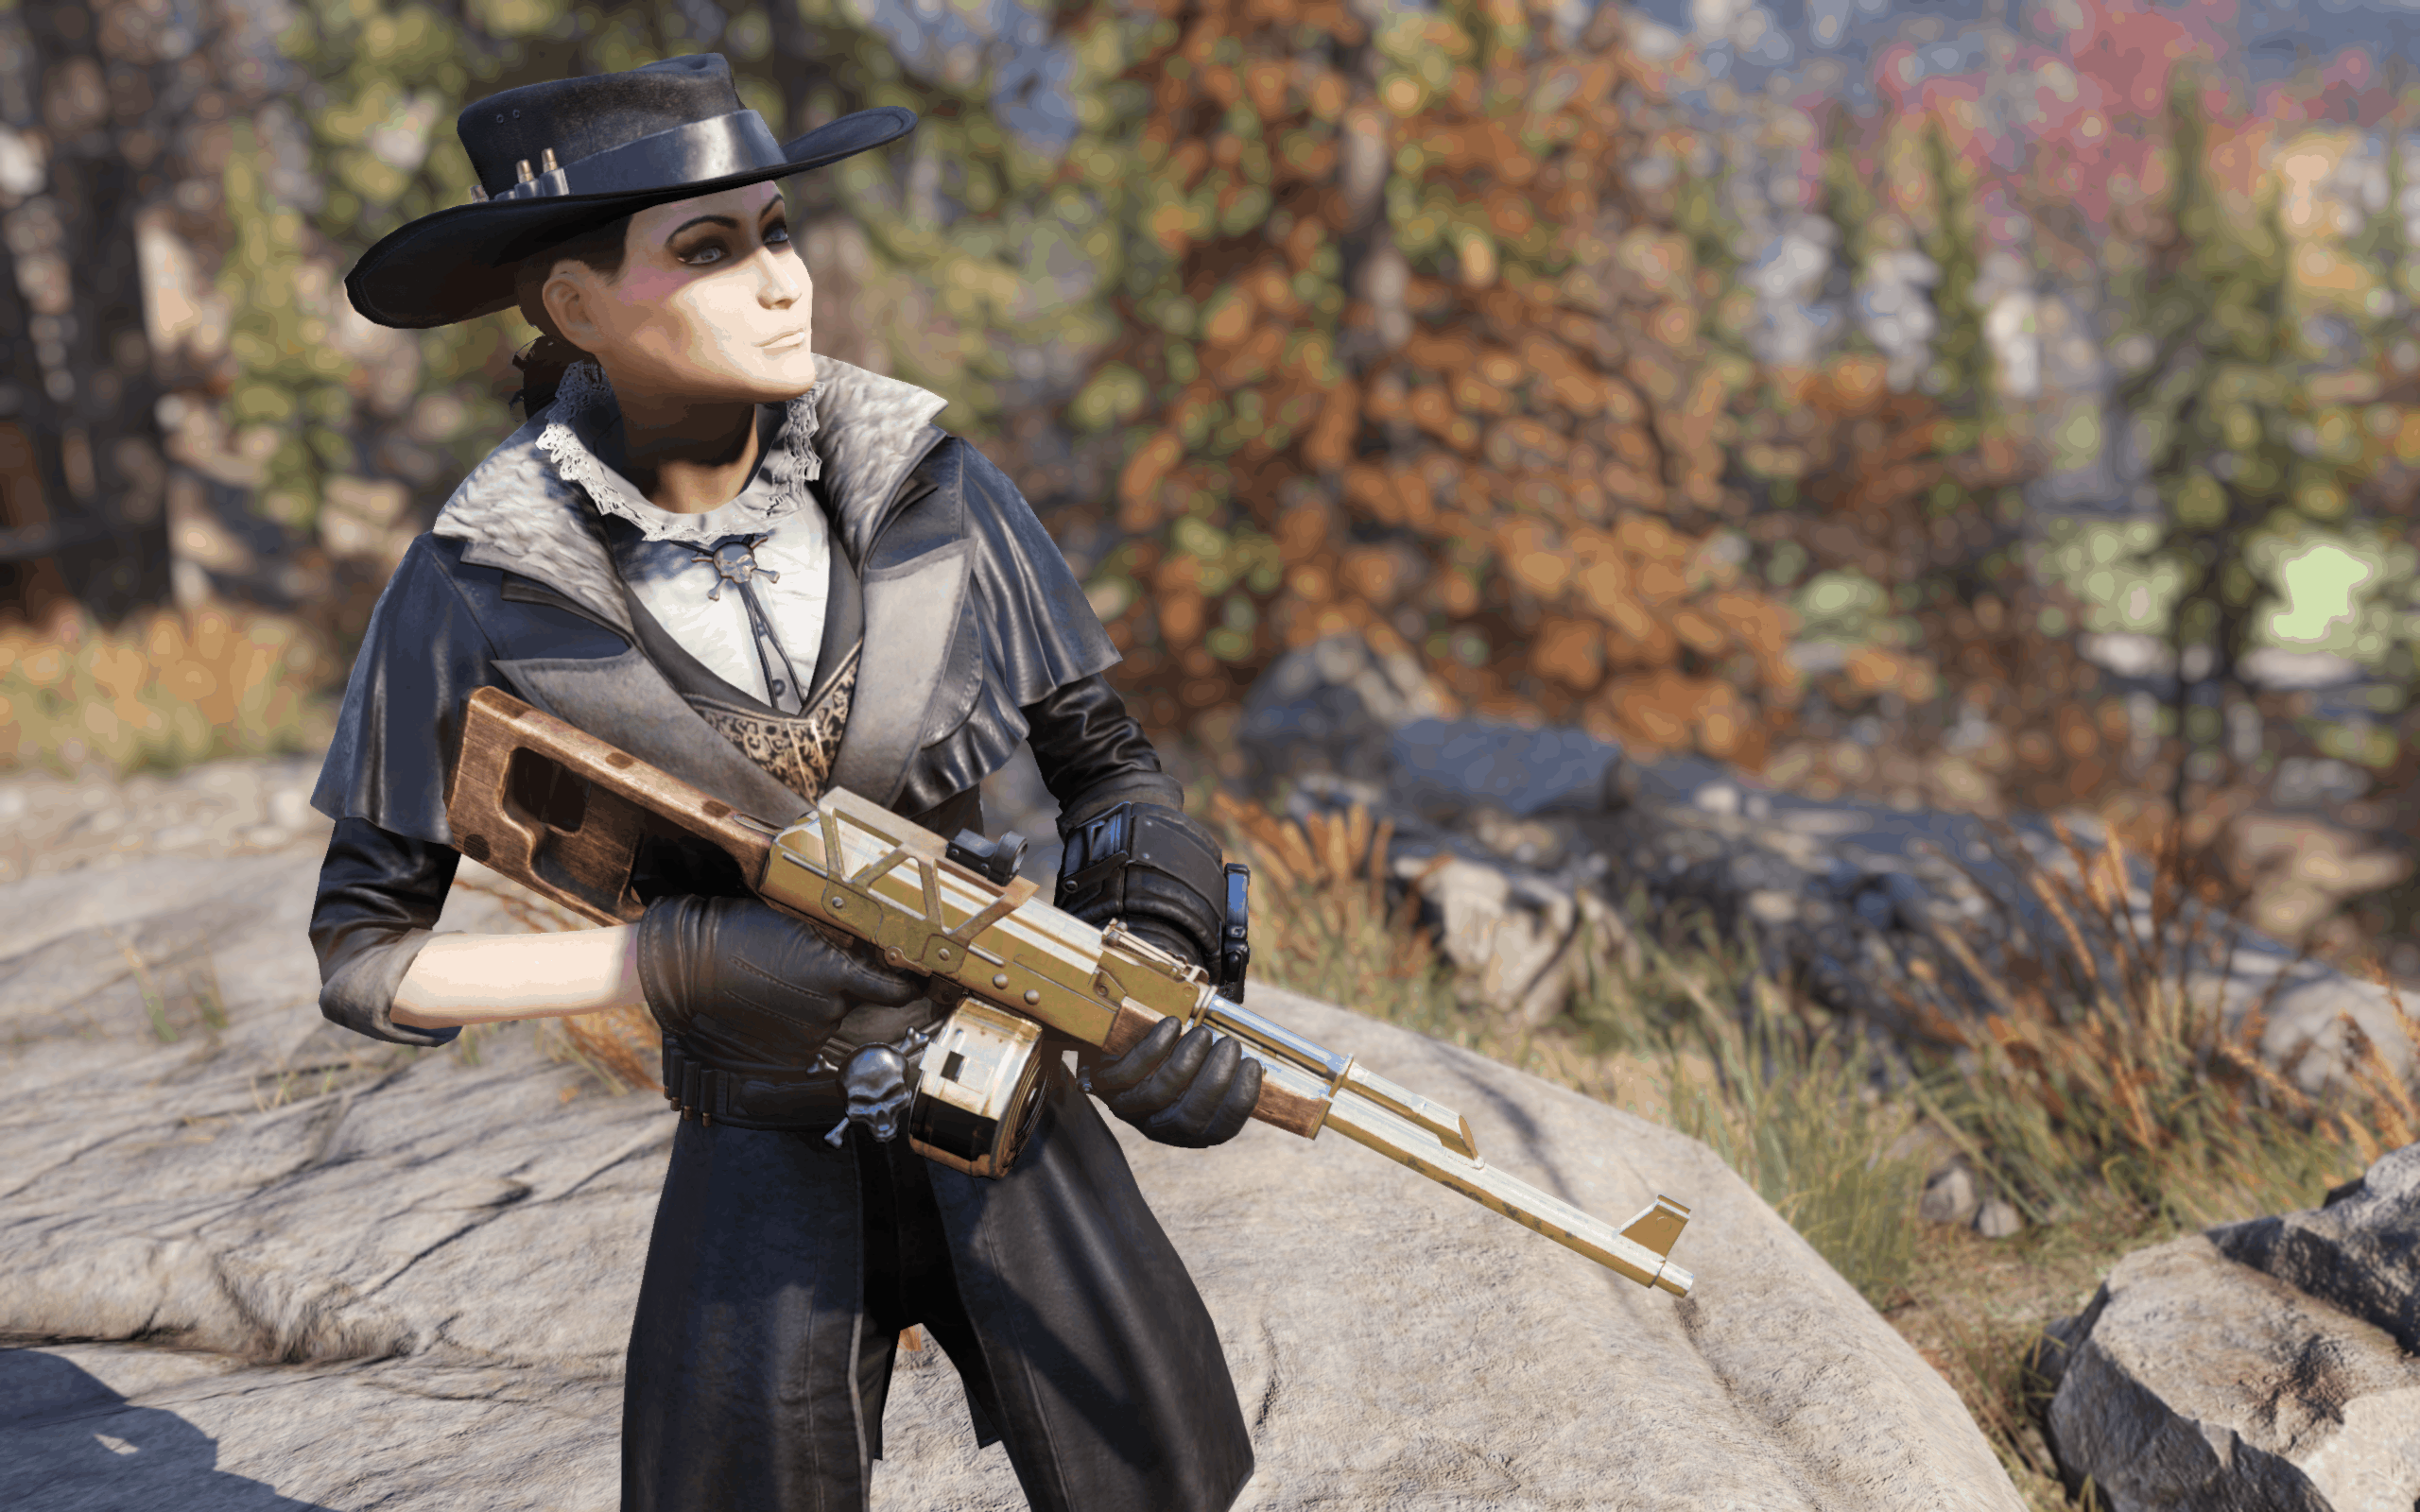 Starlet Sniper - Black Edition - Fallout 76 Mod download